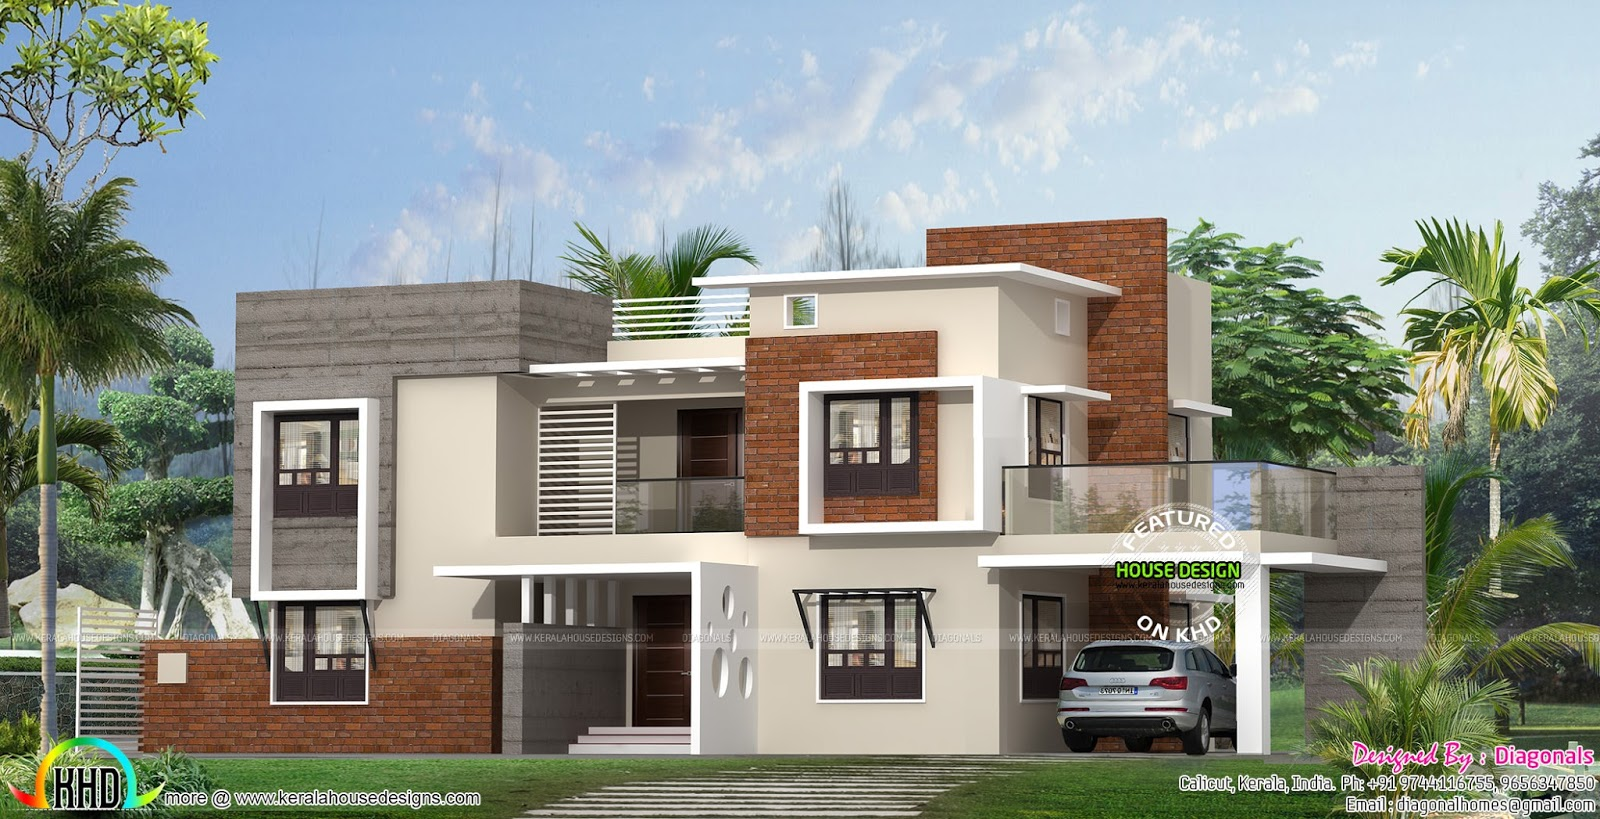 Box model modern flat roof home plan kerala home design for Homeplan com